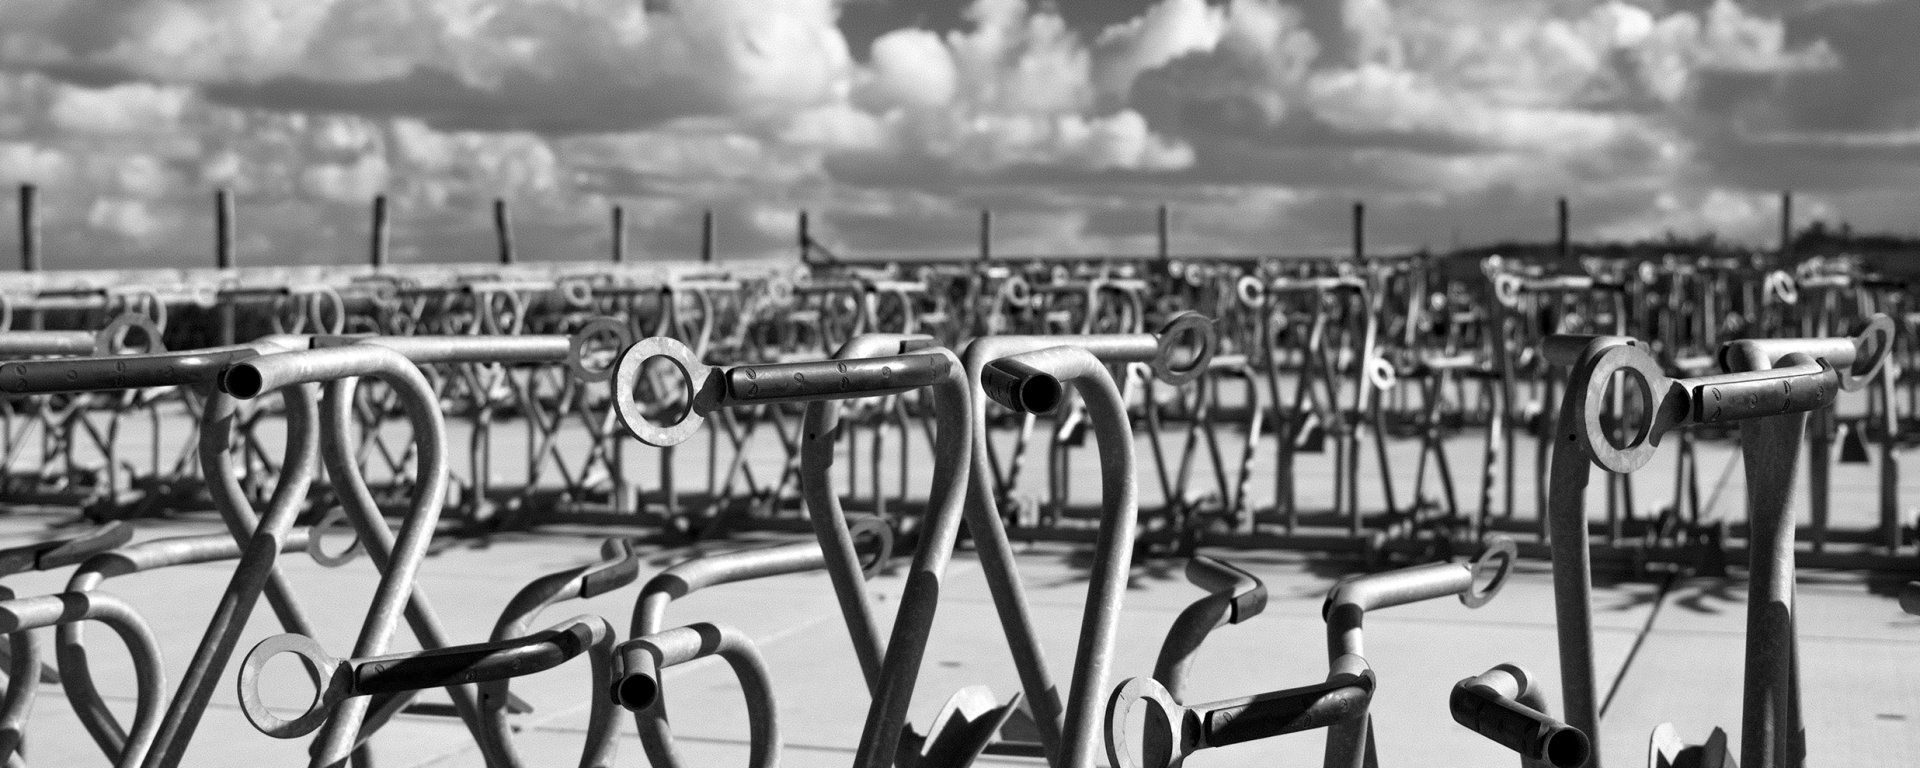 monochrome monday - bicycle stands